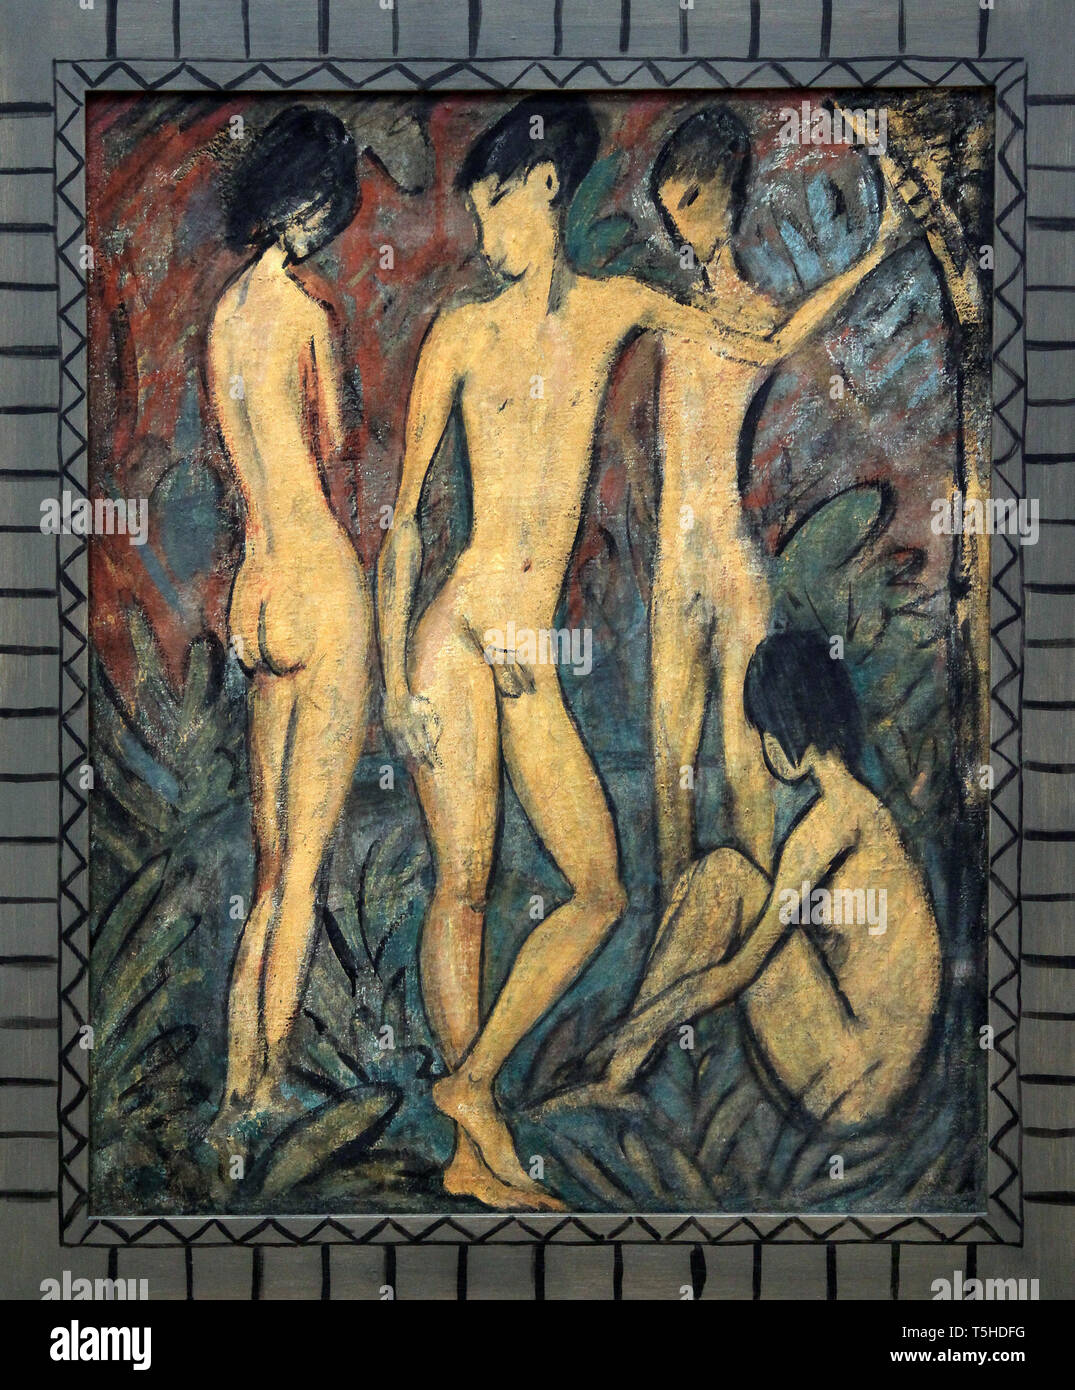 Two Young Men and Two Girls 1917 by Otto Müeller (1874 – 1930)  German expressionist painter - Stock Image